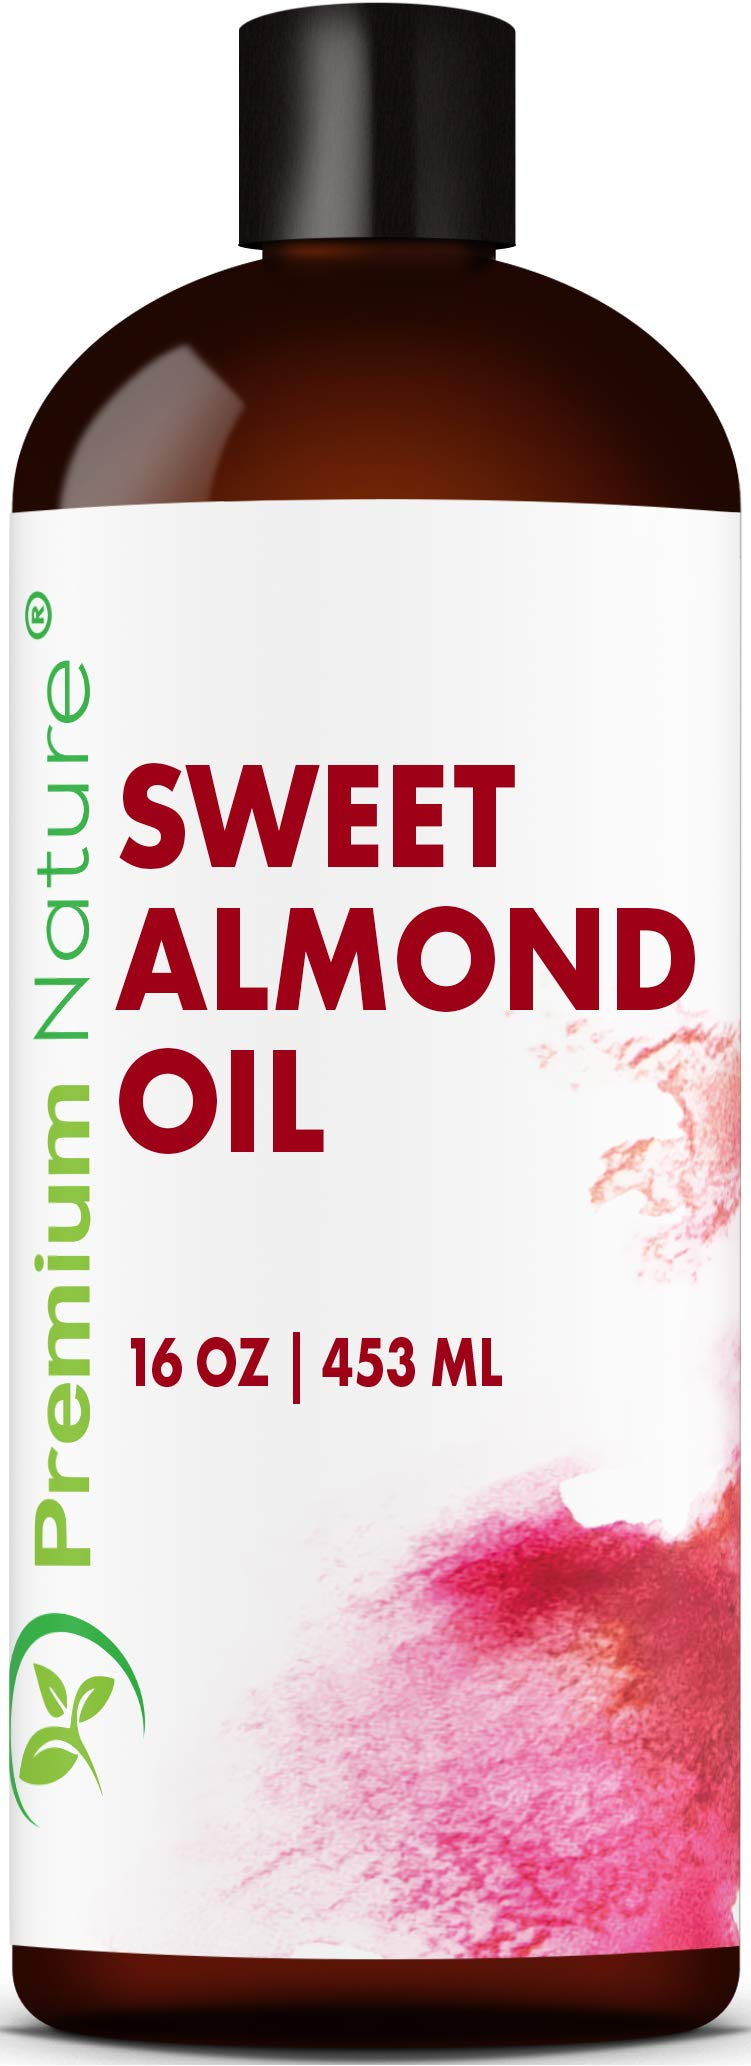 Sweet Almond Oil Carrier Oil Cold Pressed Pure Natural Body Massage Oils For Essential Oils Mixing Baby Oil Dry Skin Face Moisturizer Eye Makeup Remover Healthy Nails Cleansing Properties 16 Oz